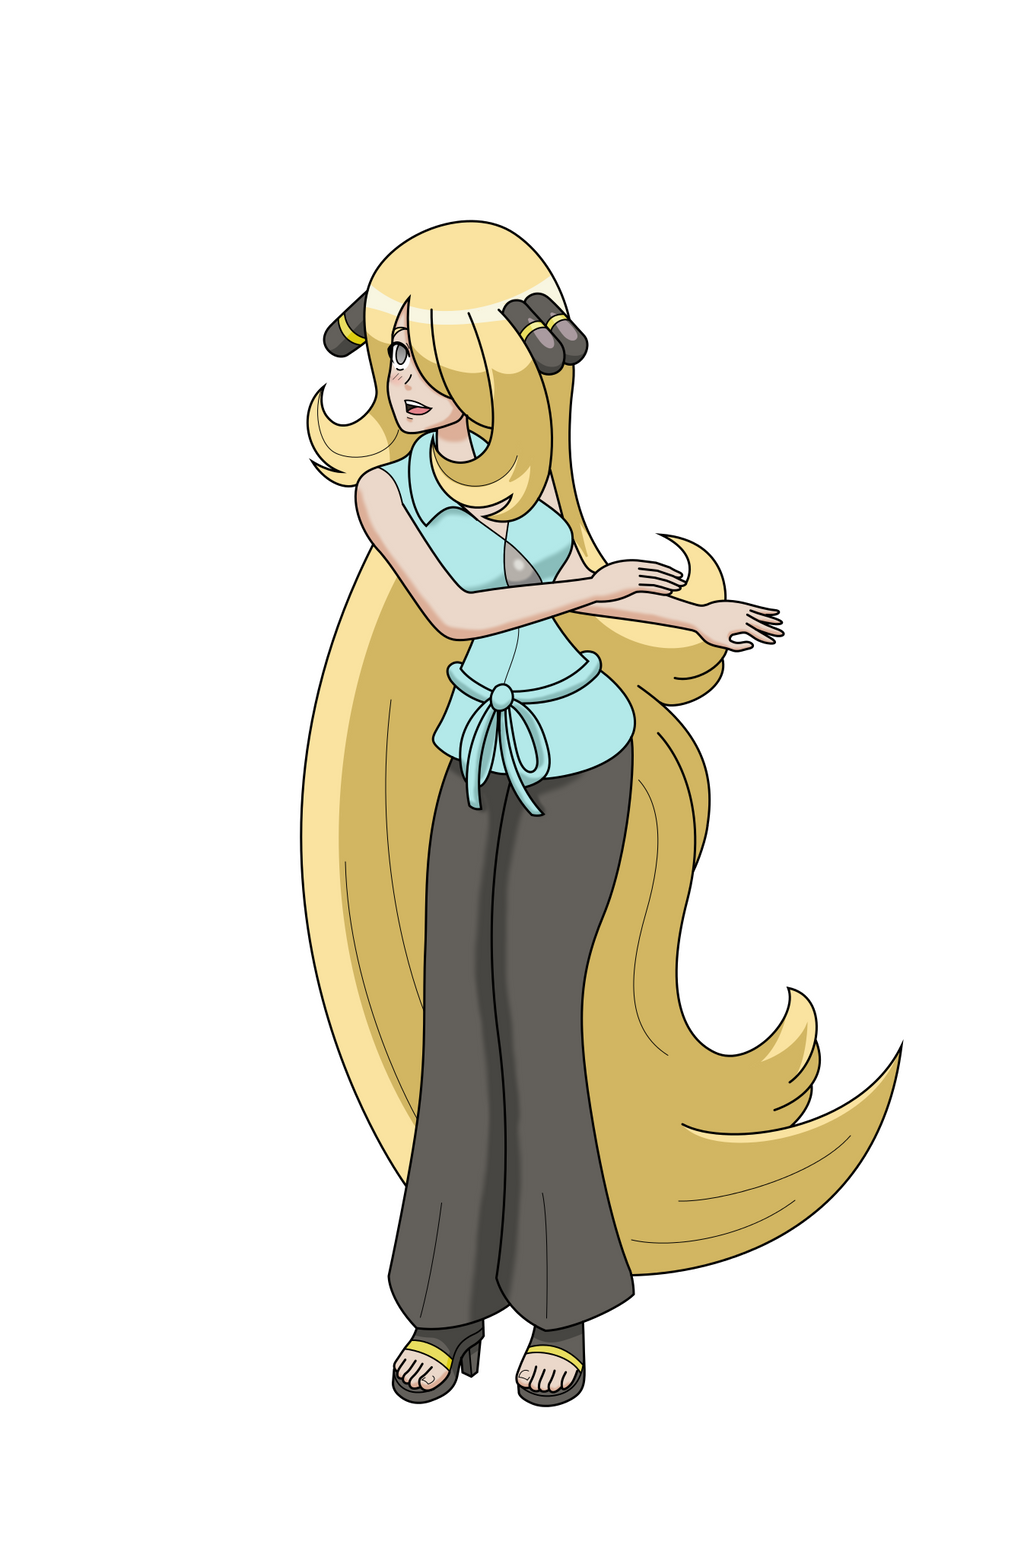 Cynthia confused by Teeter Dance by MegatronMan on DeviantArt